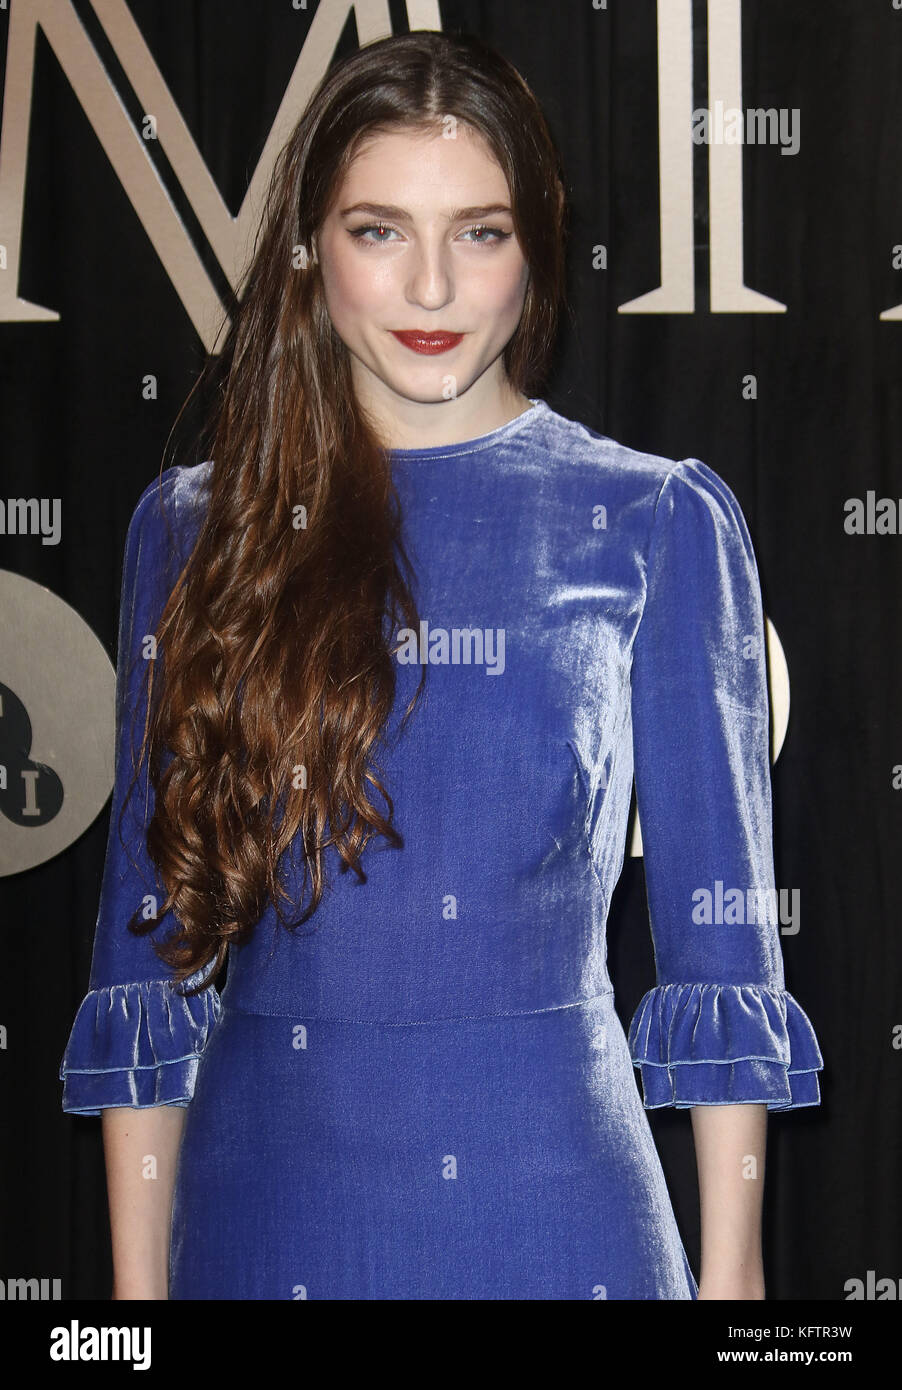 Oct 03, 2017 - Birdy attending 'BFI Luminous Fundraising Gala at The Guildhall in London, England, UK Stock Photo